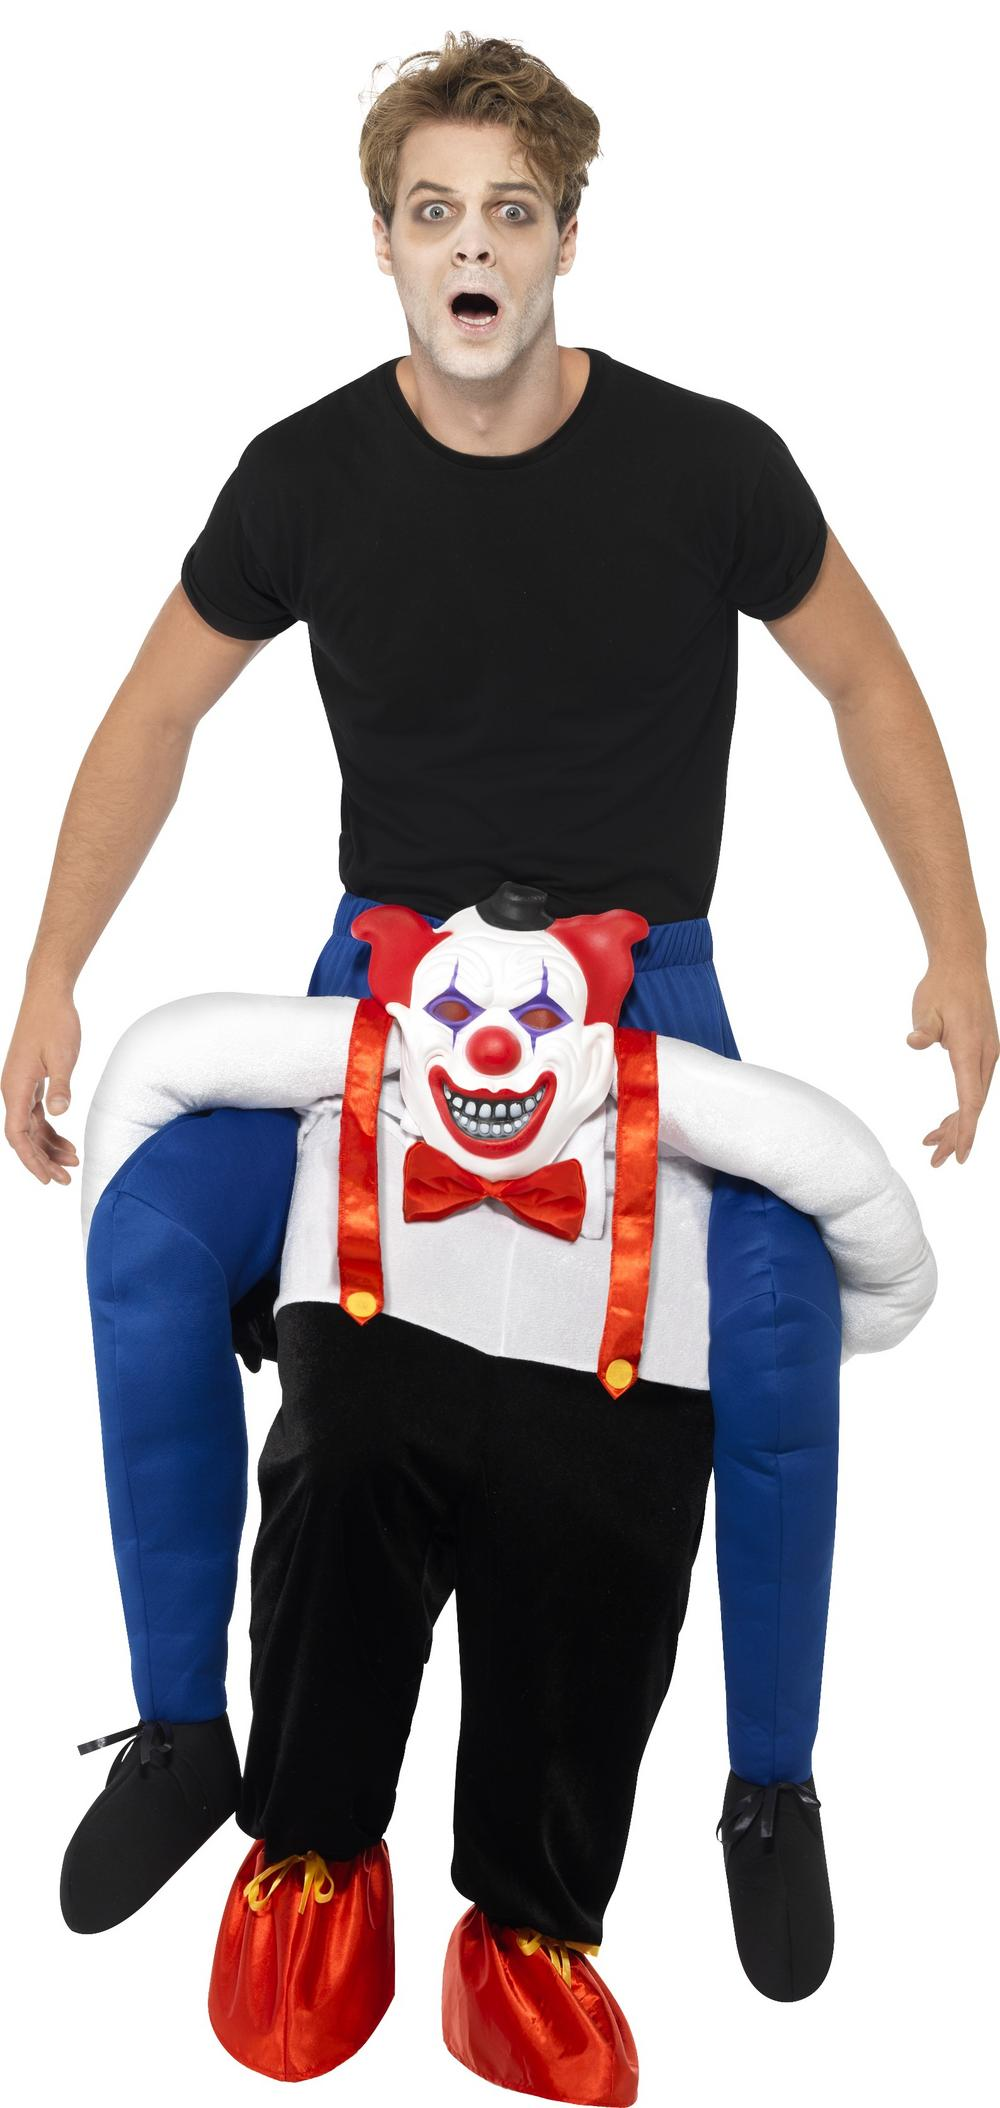 Sinister Clown Piggy Back Adults Costume